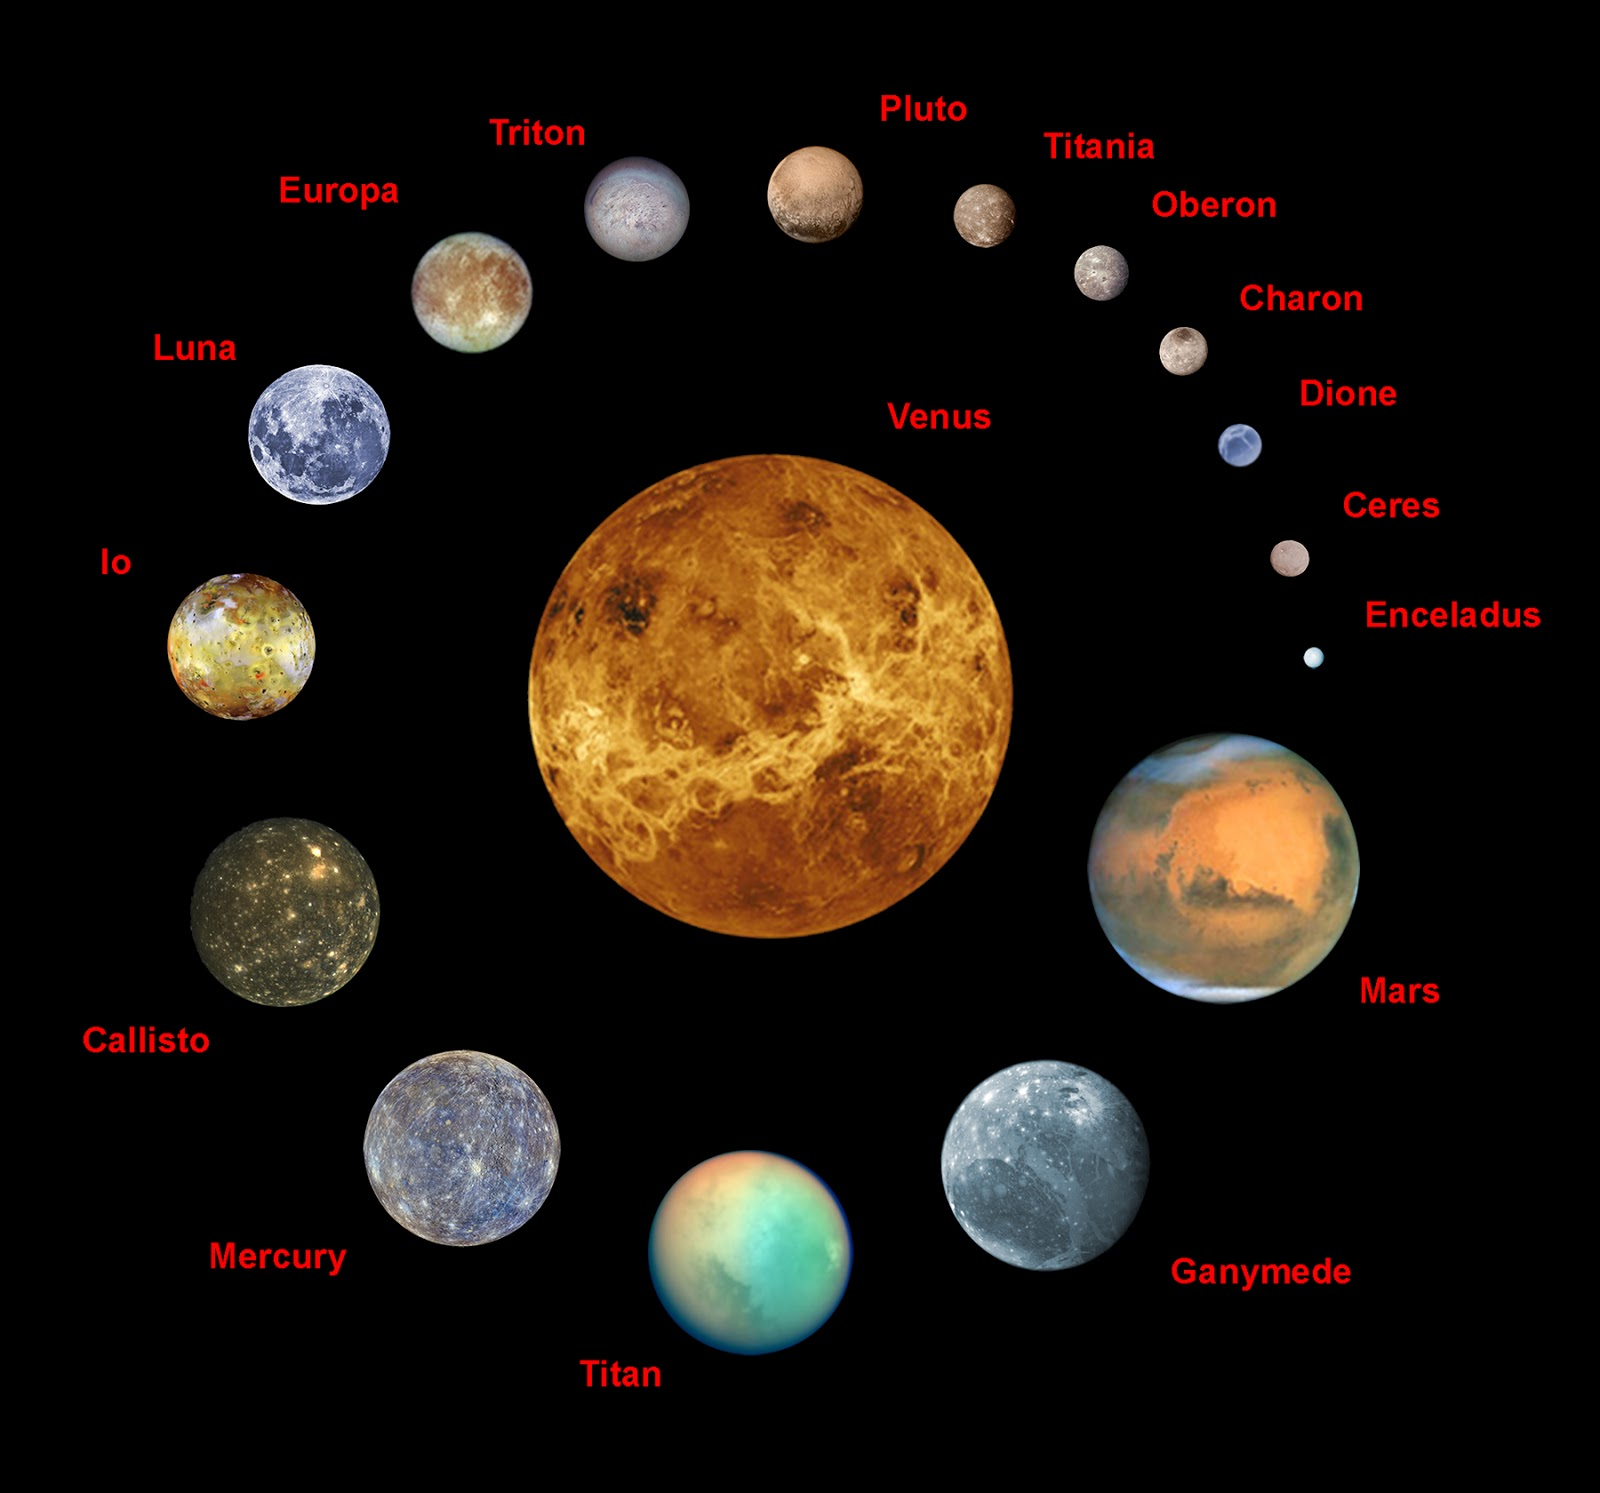 What are the four dwarf planets in our solar system